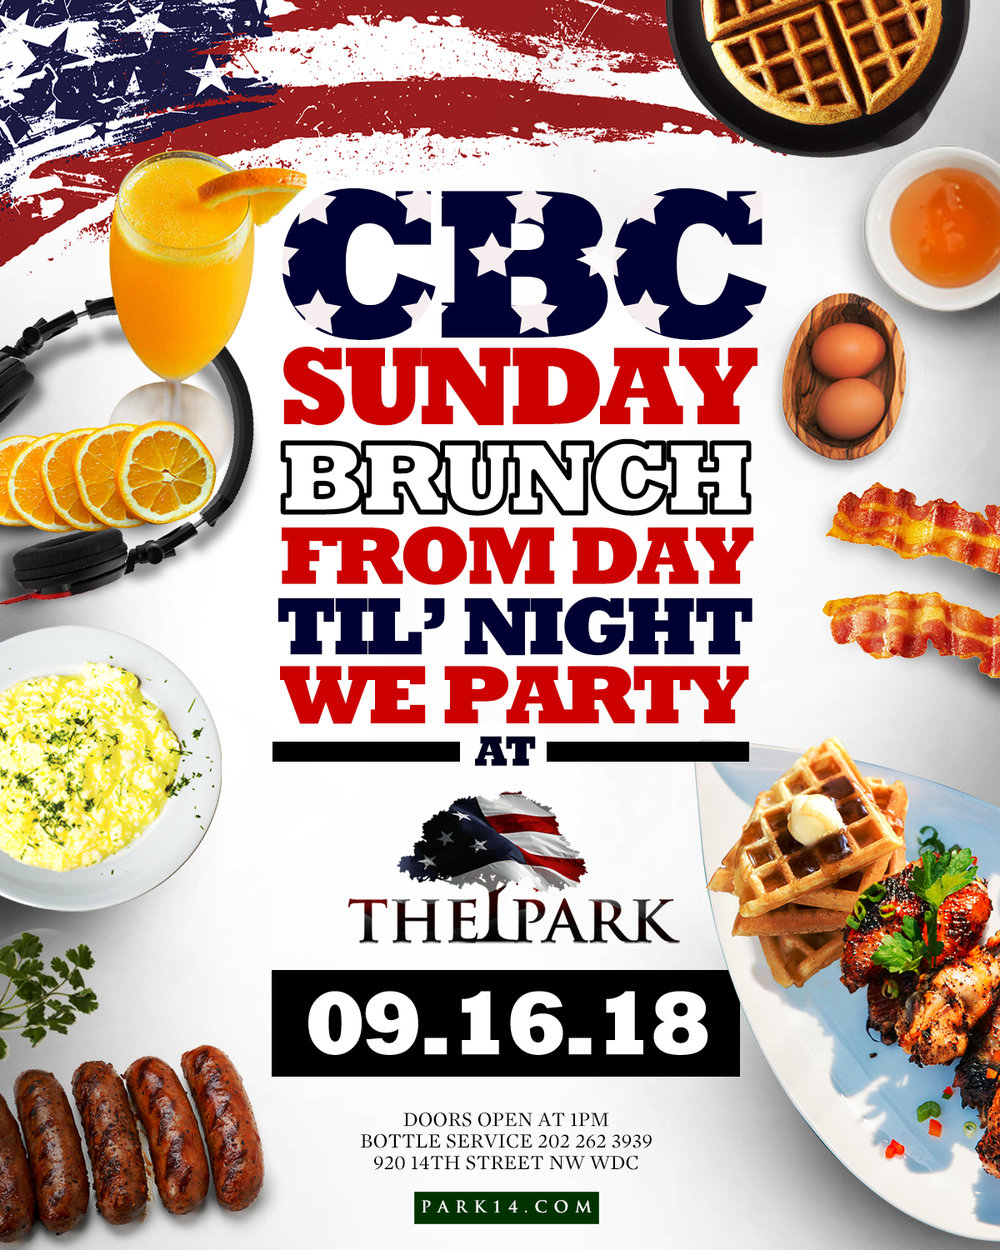 Caucus Brunch Sunday Flyer.jpg